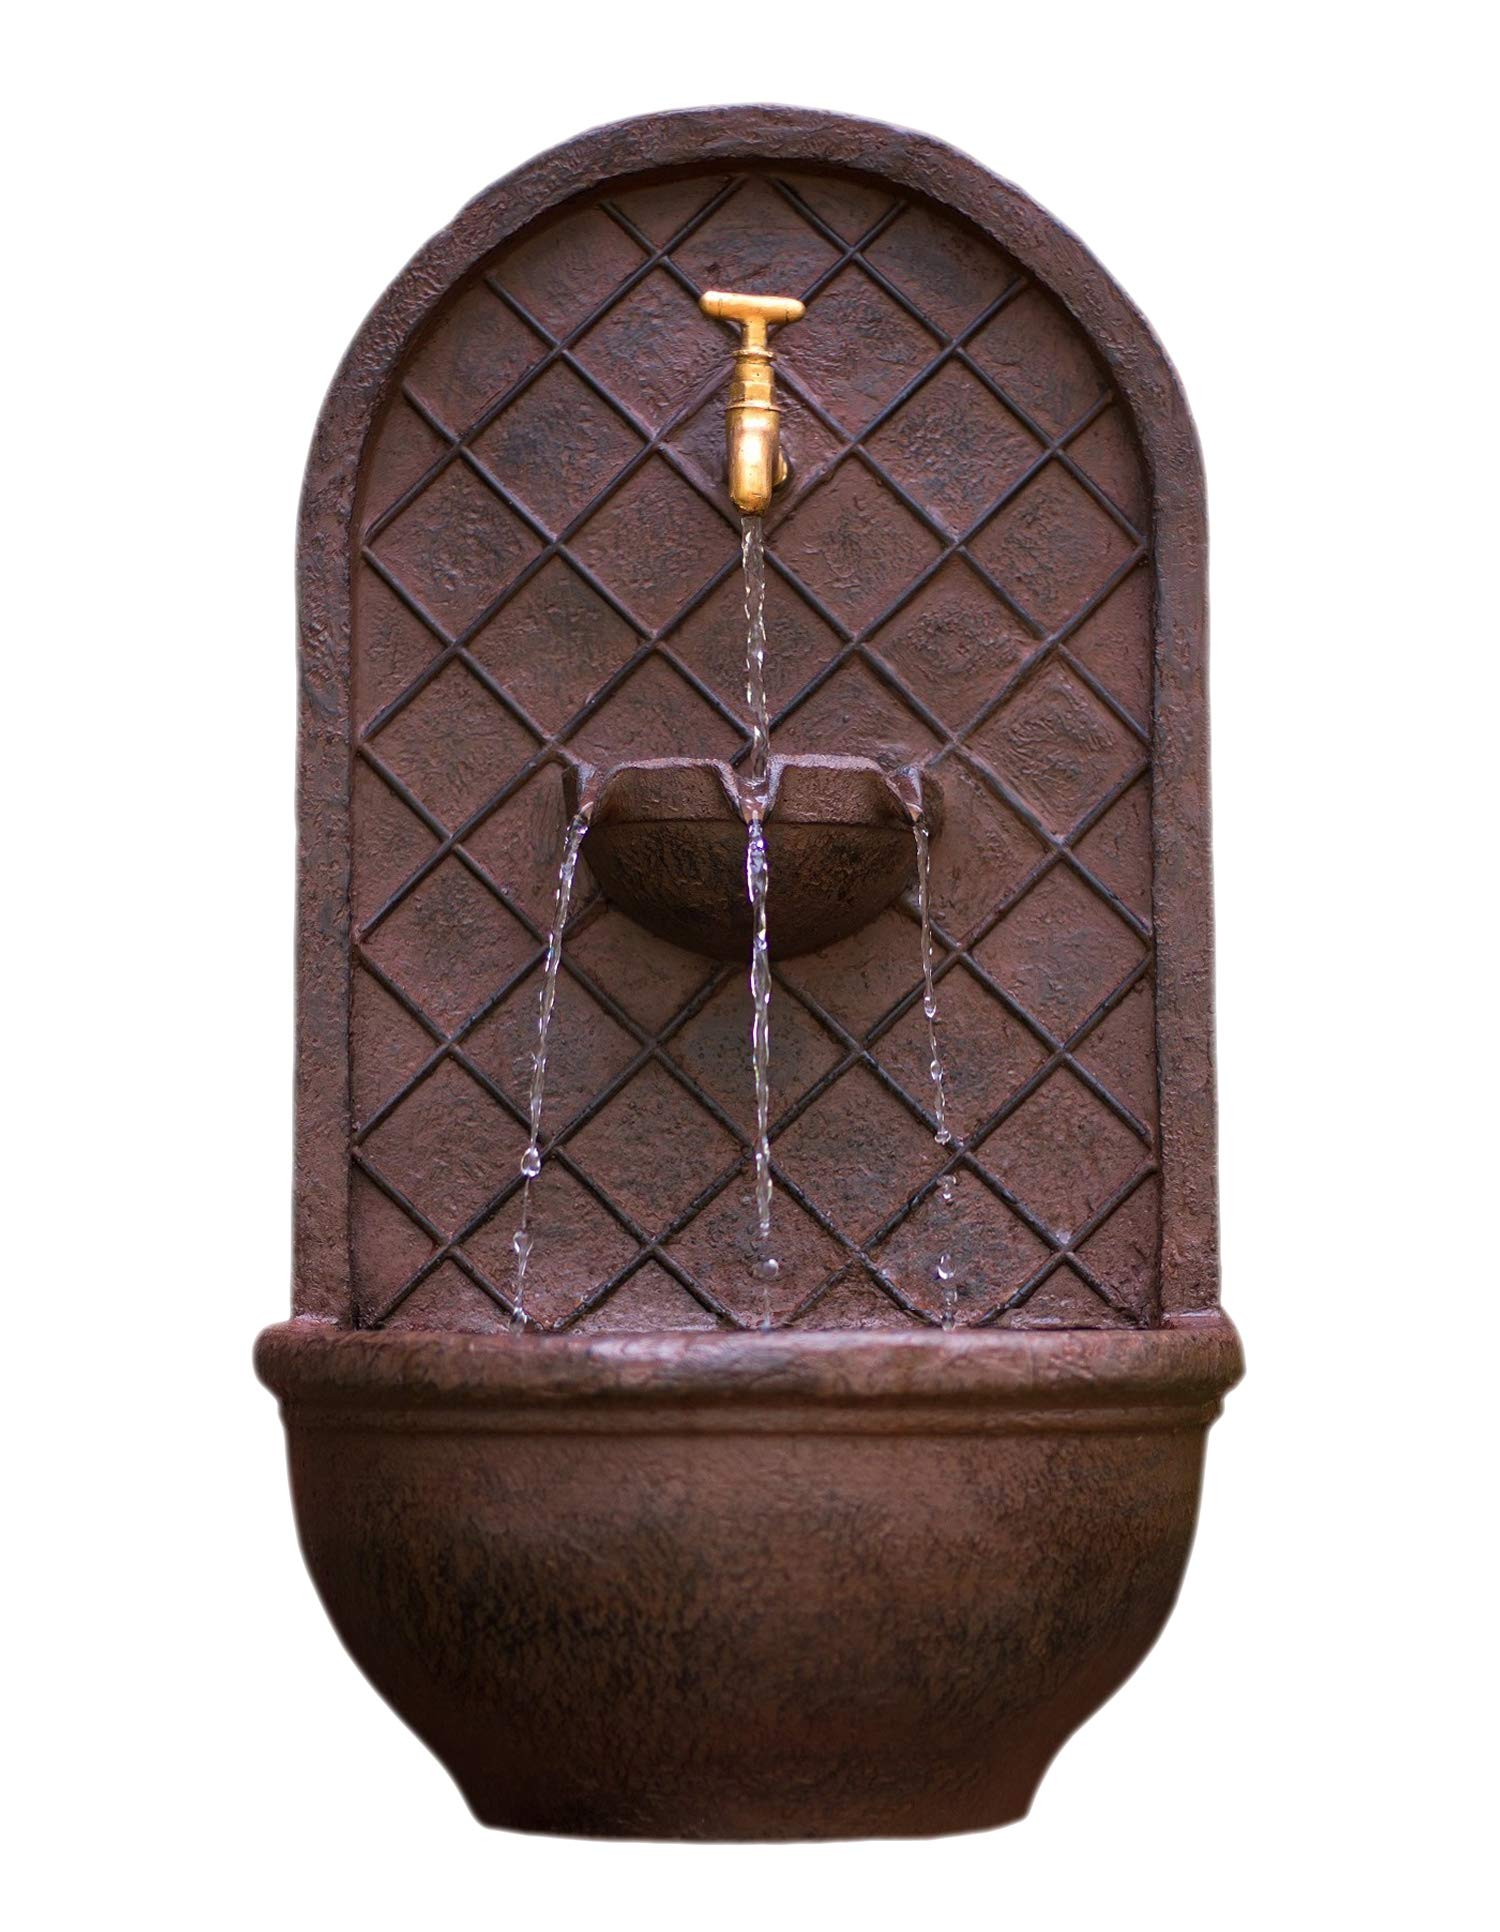 The Milano - Outdoor Wall Fountain - Weathered Bronze Finish - Water Feature for Garden, Patio and Landscape Enhancement